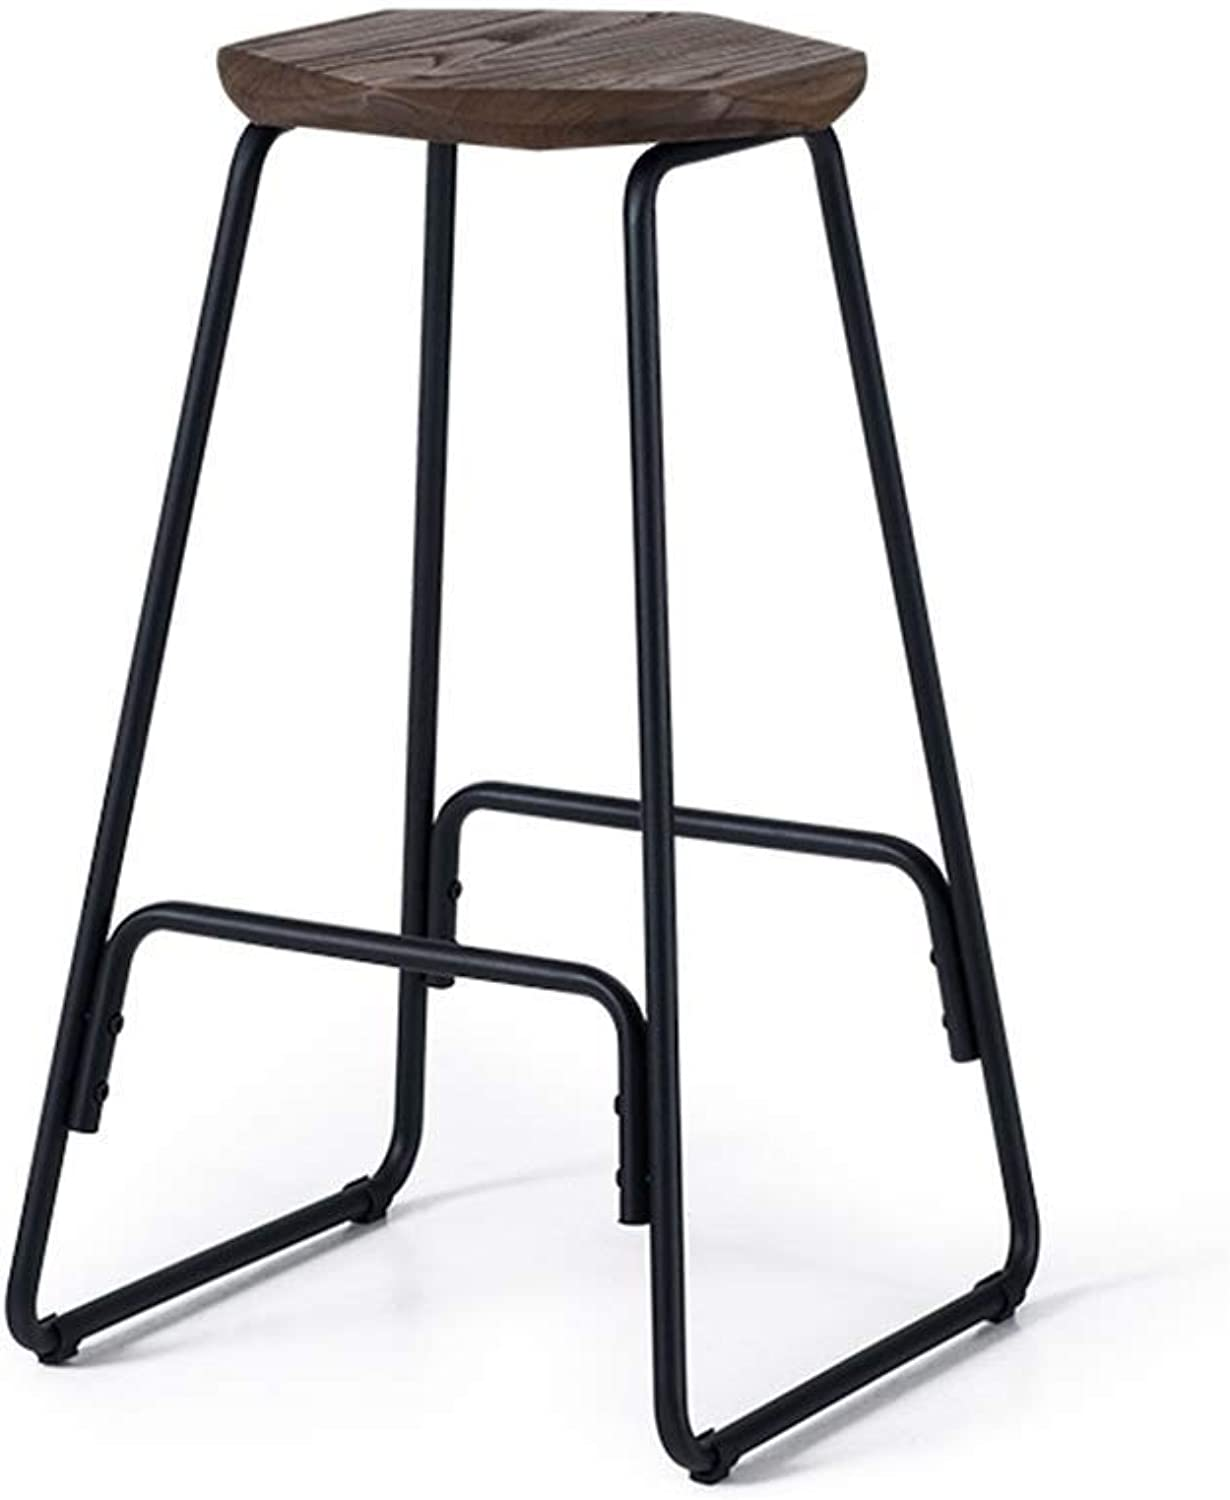 Bar Stool, Rectangular Bar Chair, High Stool with Backrest Seat, Breakfast Cafe Bar, Maximum Load  150kg, 39x32x67 cm Retro Bar Chair Design (color    3)